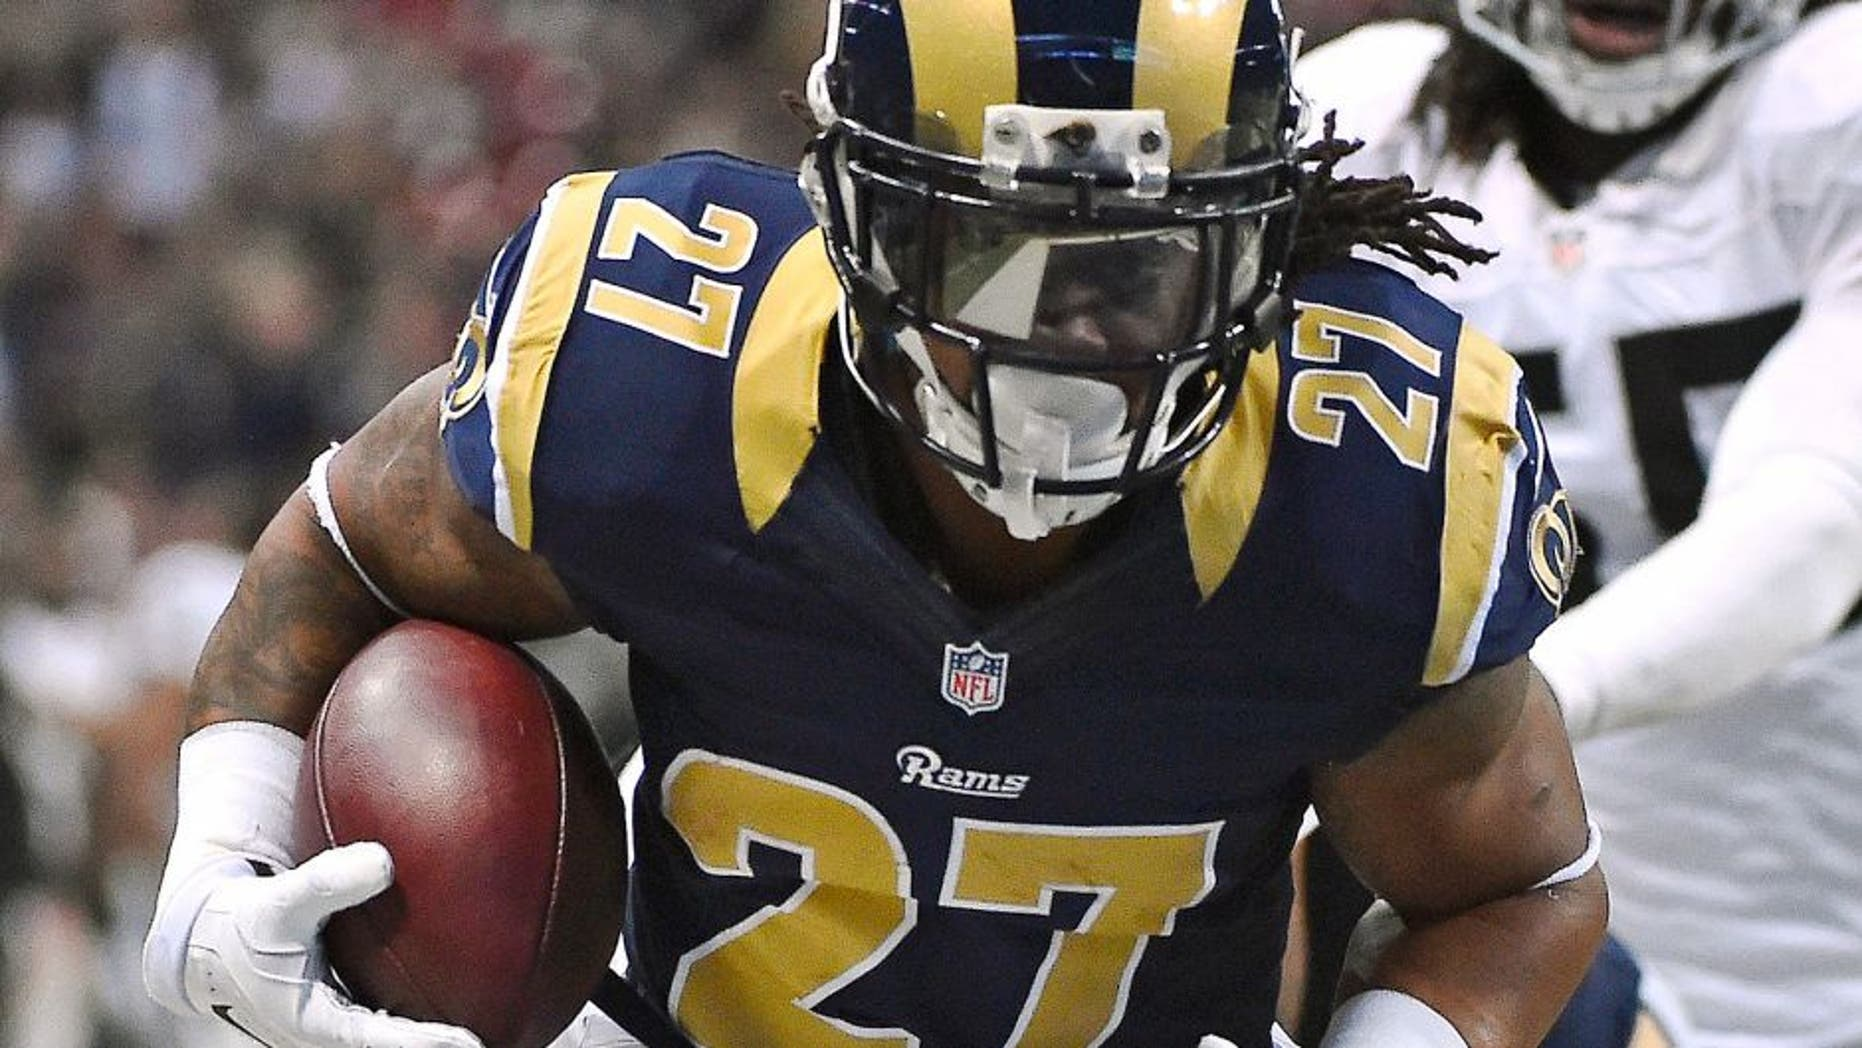 Nov 30, 2014; St. Louis, MO, USA; St. Louis Rams running back Tre Mason (27) runs in for a touchdown against the Oakland Raiders during the first half at the Edward Jones Dome. Mandatory Credit: Jasen Vinlove-USA TODAY Sports